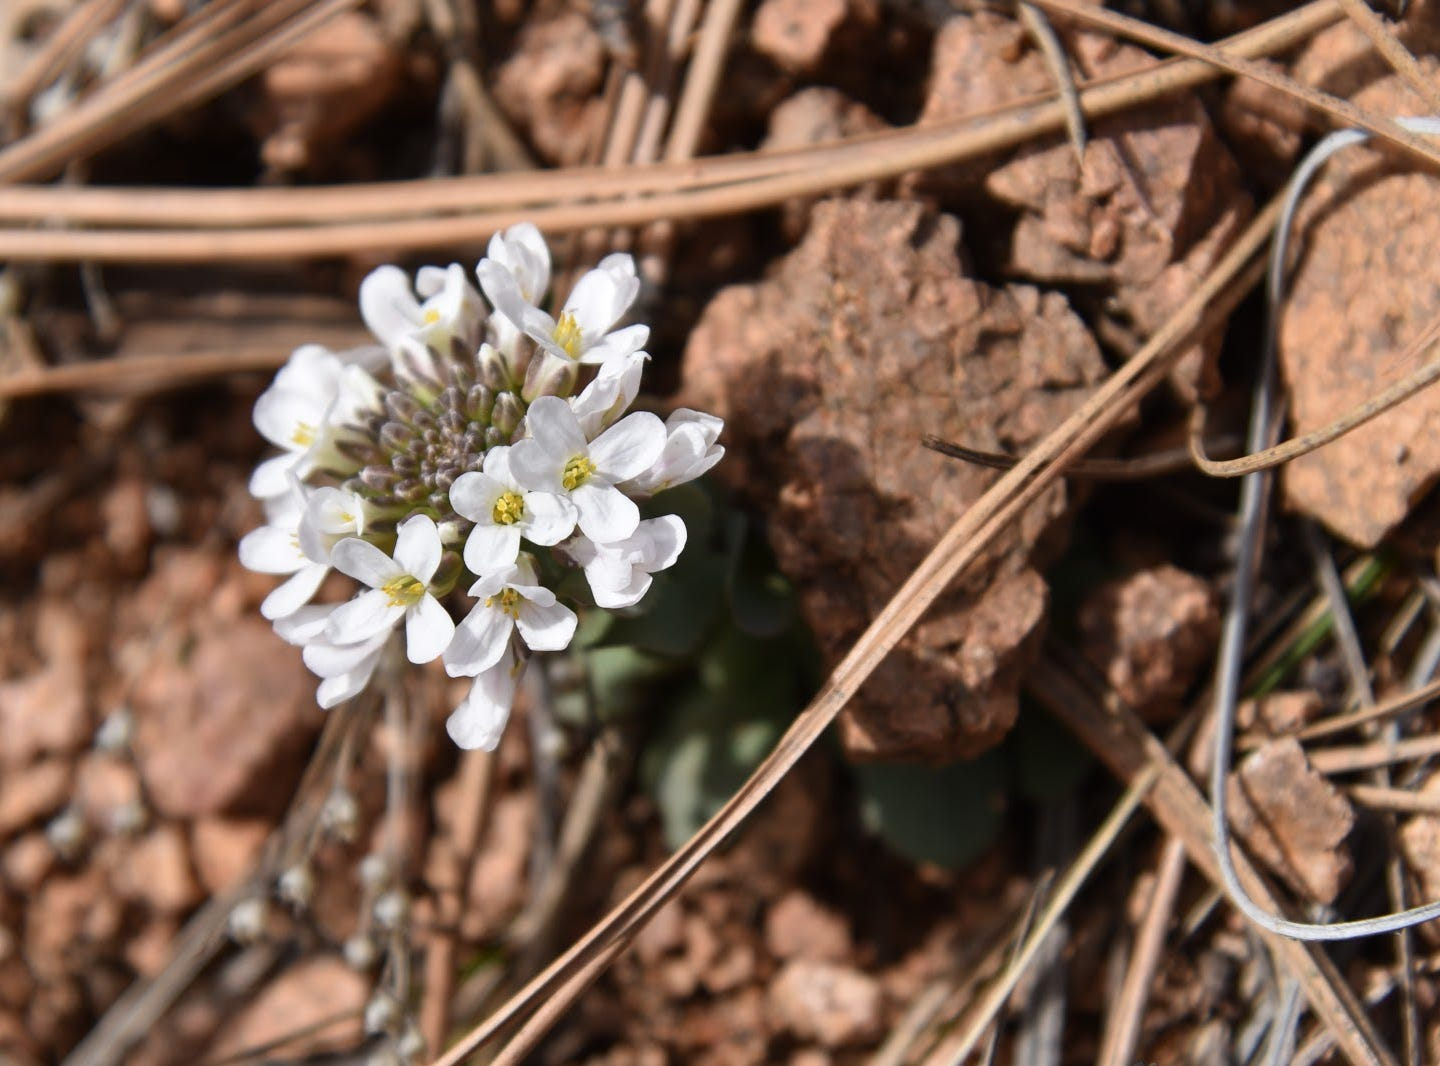 Wild candytuft blooms along the Firewater loop route from February through August.